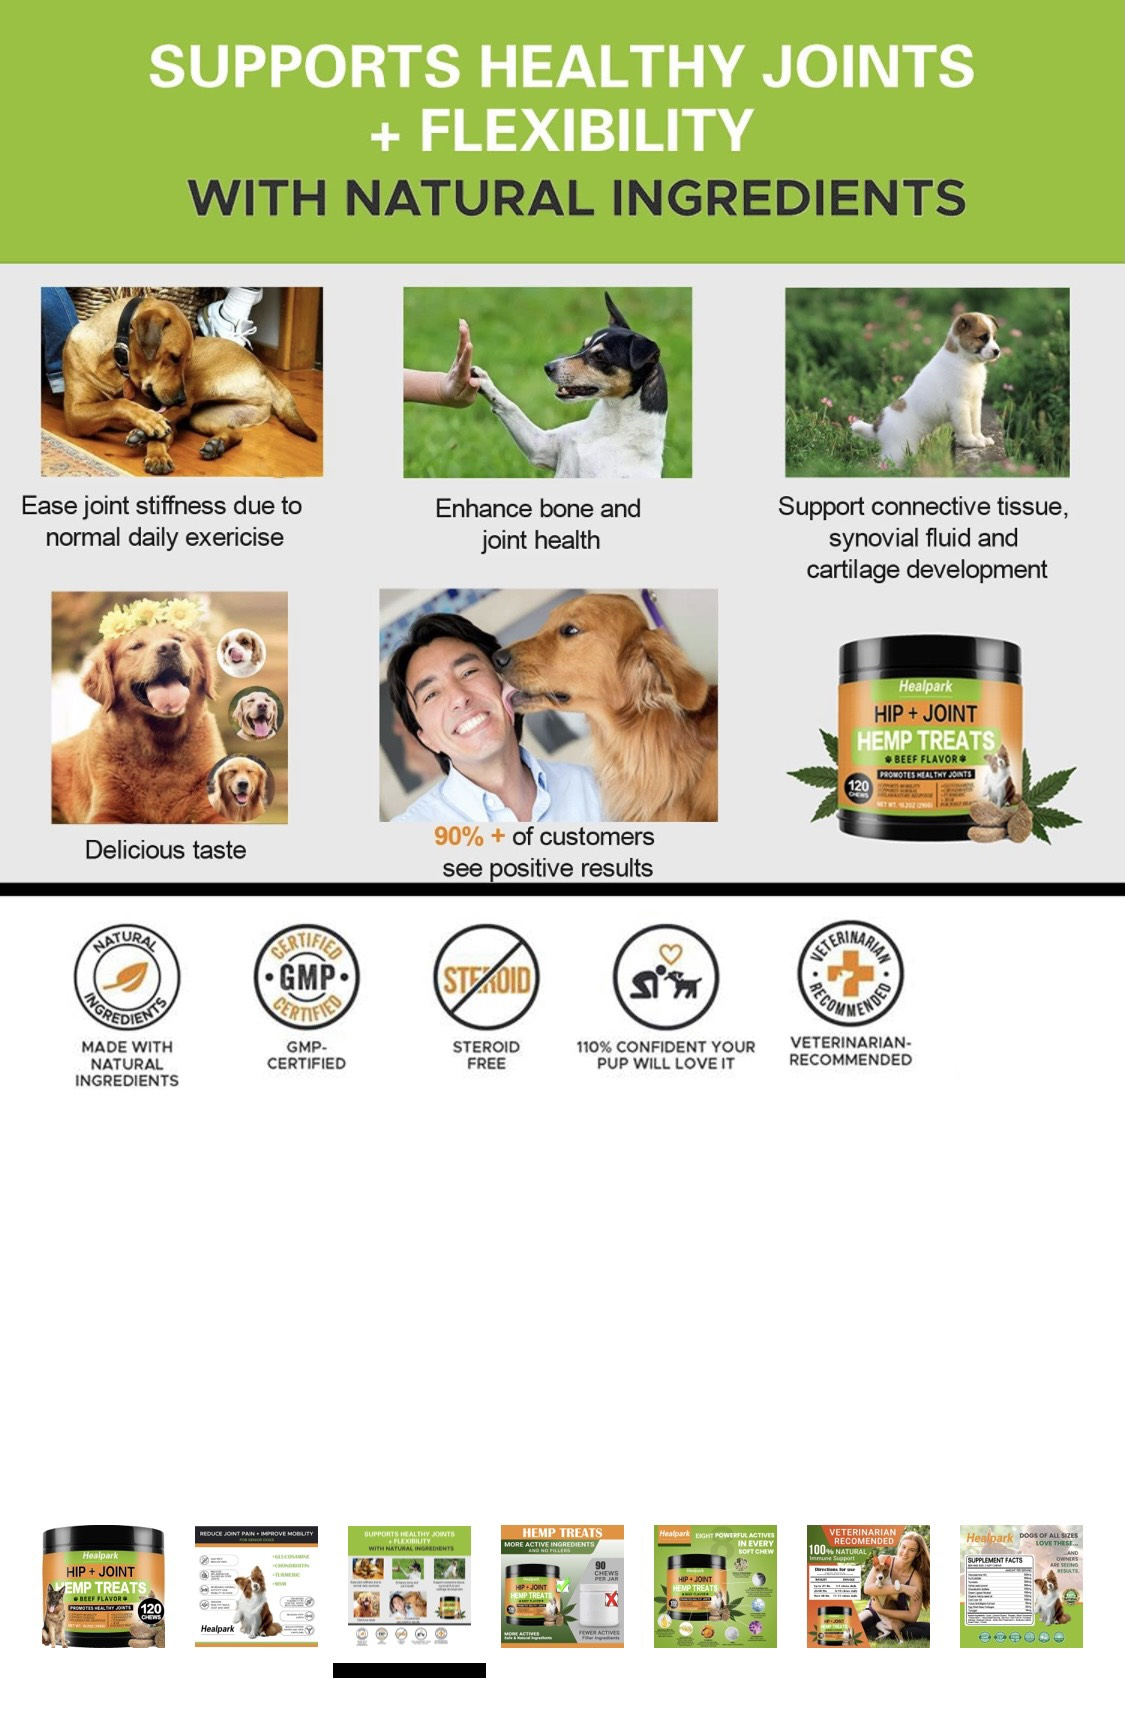 Healpark Hip and Joint Supplement for Dogs - Hemp Chew Treats - Beef - 120 chews